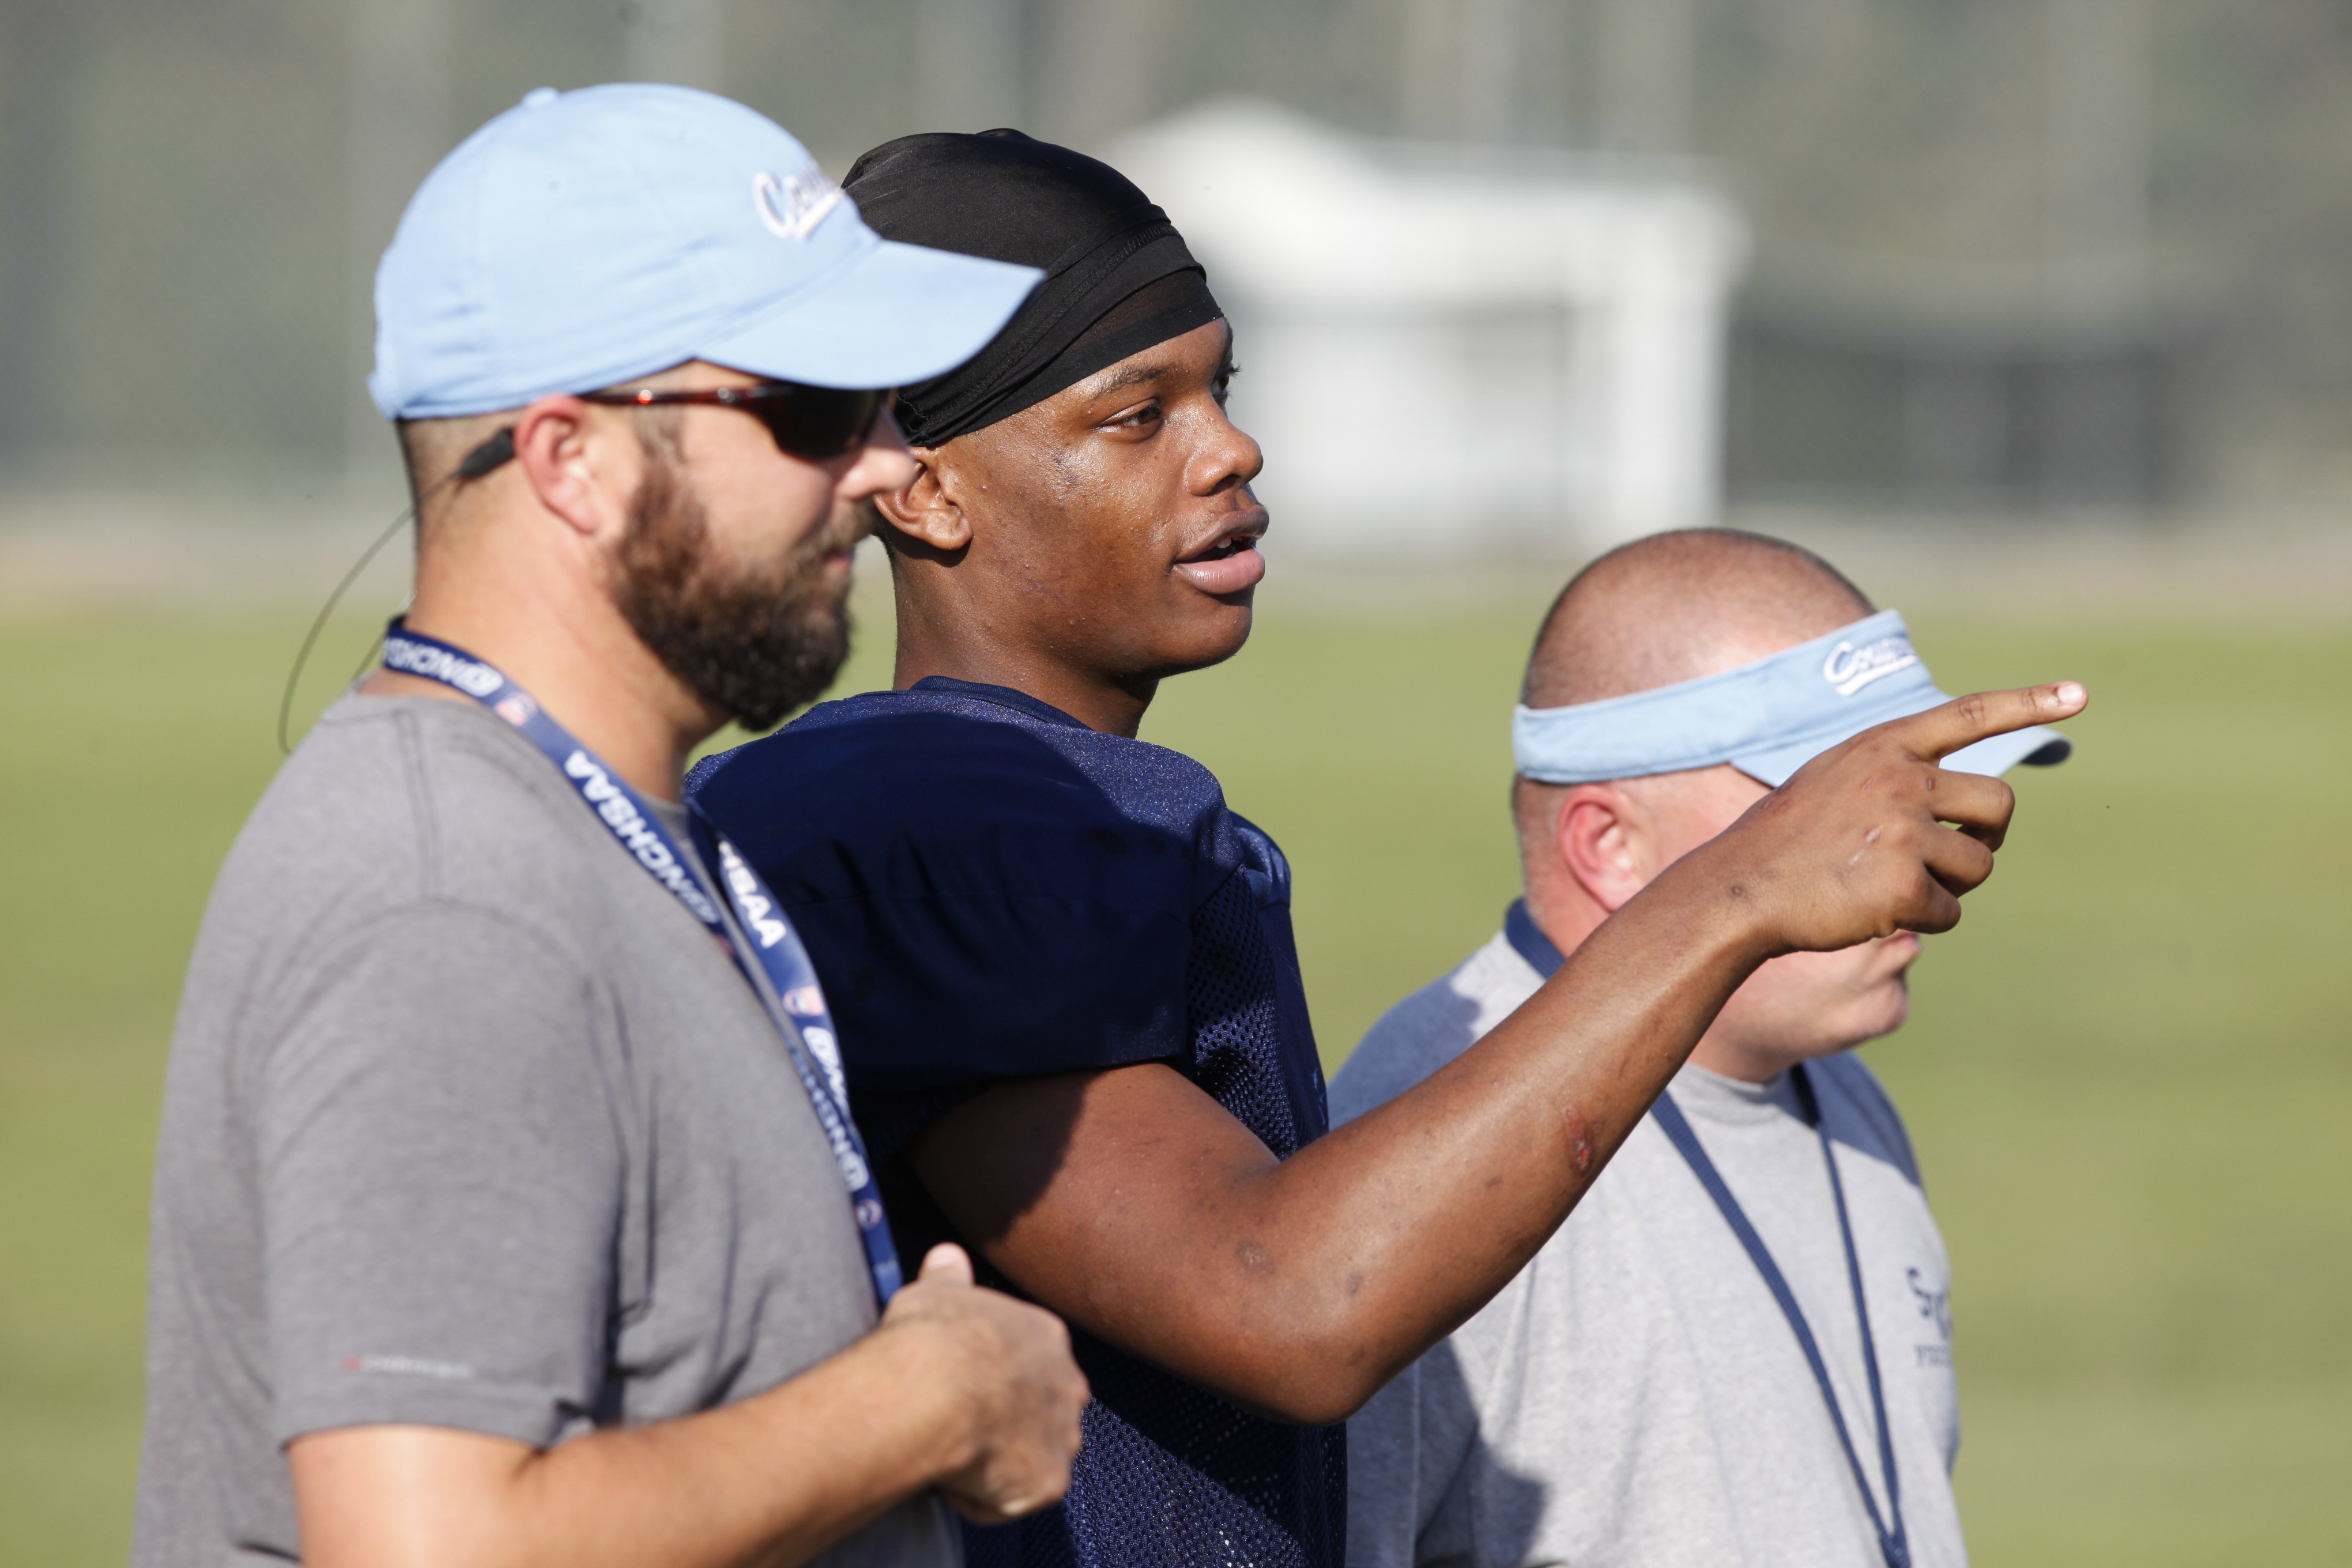 Quontellas Norwood (center) talks with head coach Jonathan Cobb (left) and offensive line coach Eric Duff (right) during practice (Photo: Mark Dolejs, USA TODAY Sports Images)